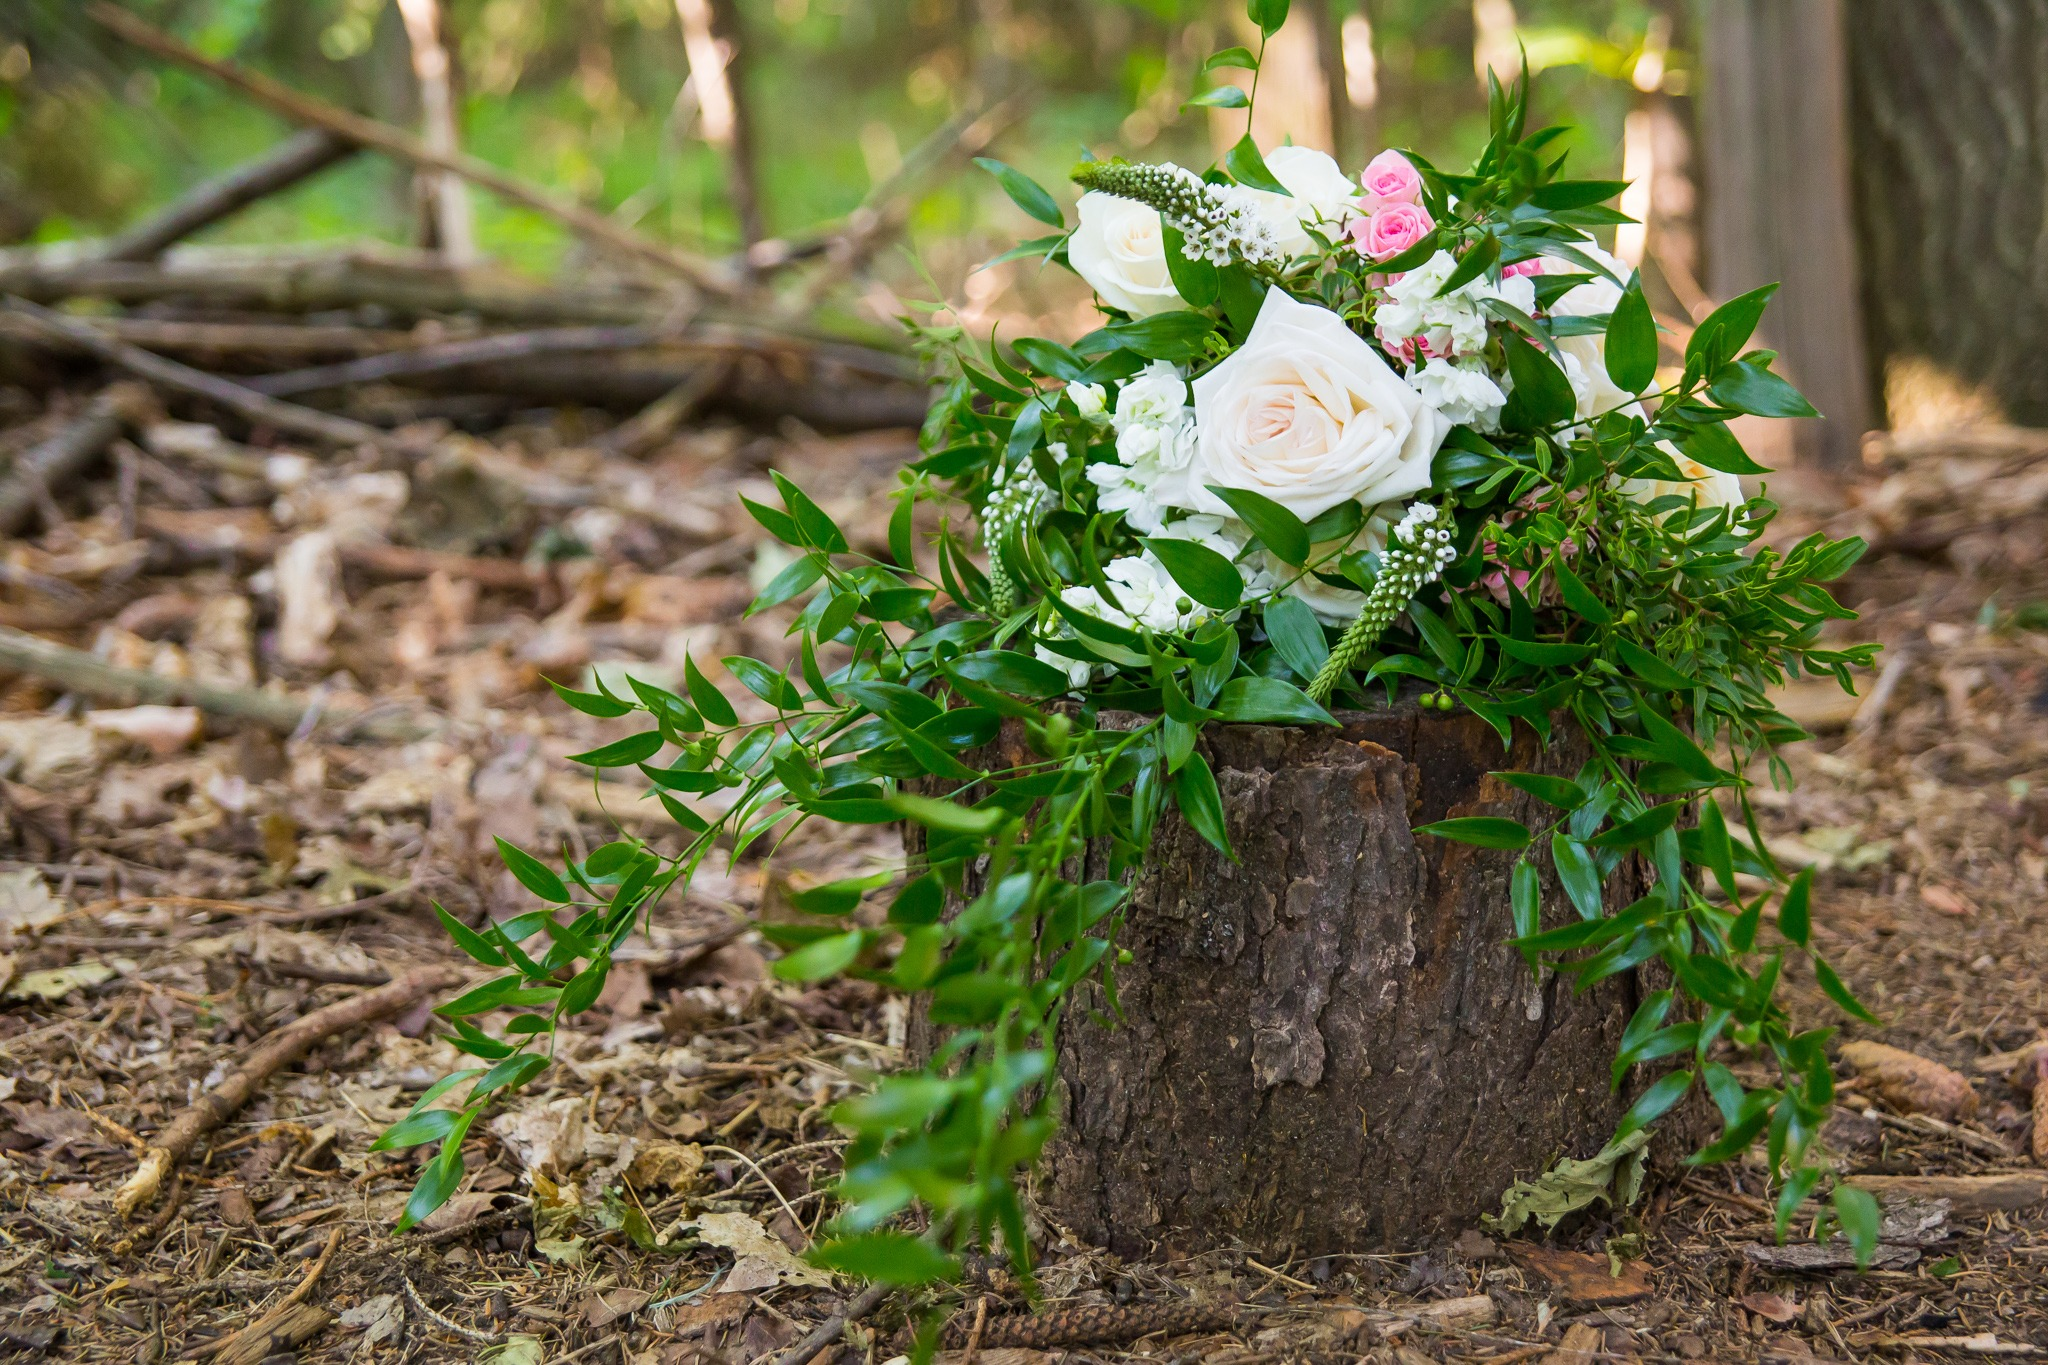 bridal bouquet on a tree stump in the forest